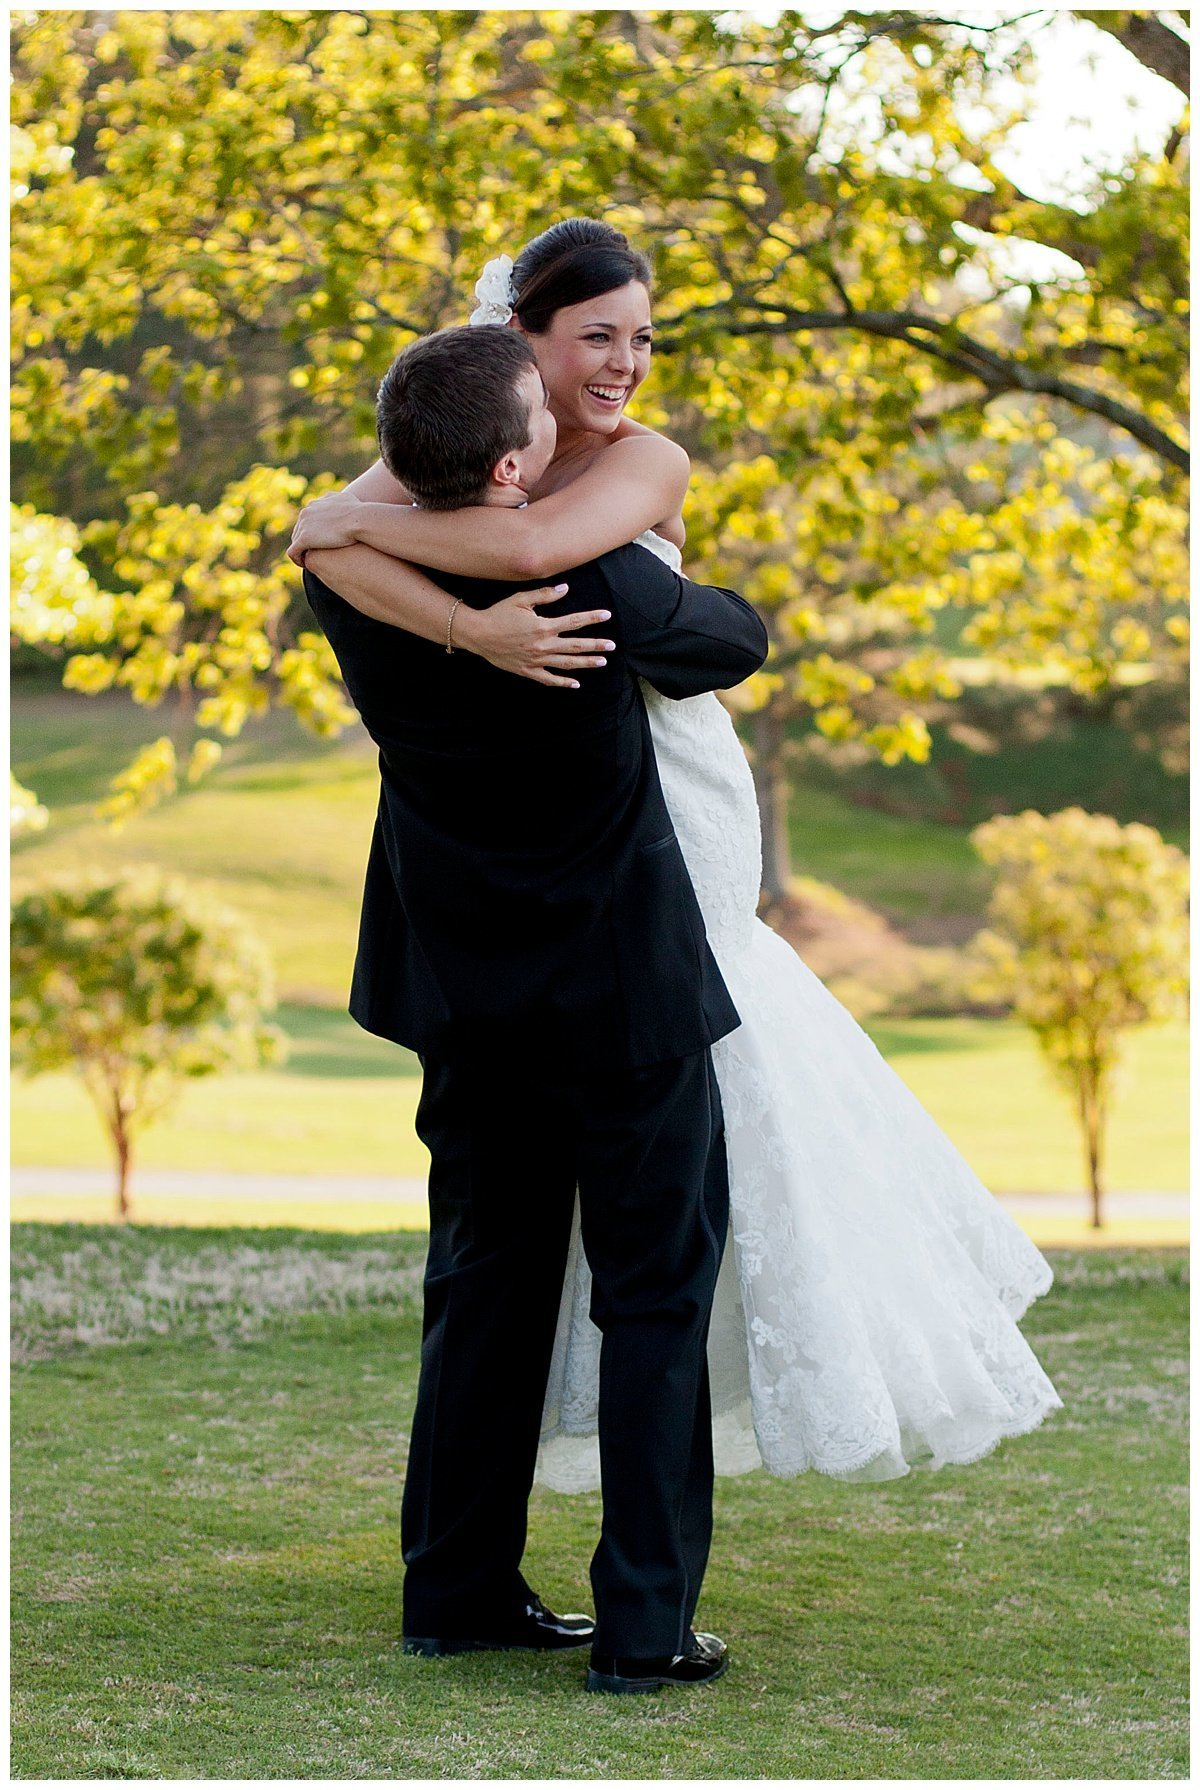 Groom spinning bride around at Summit Chase Country Club's golf course